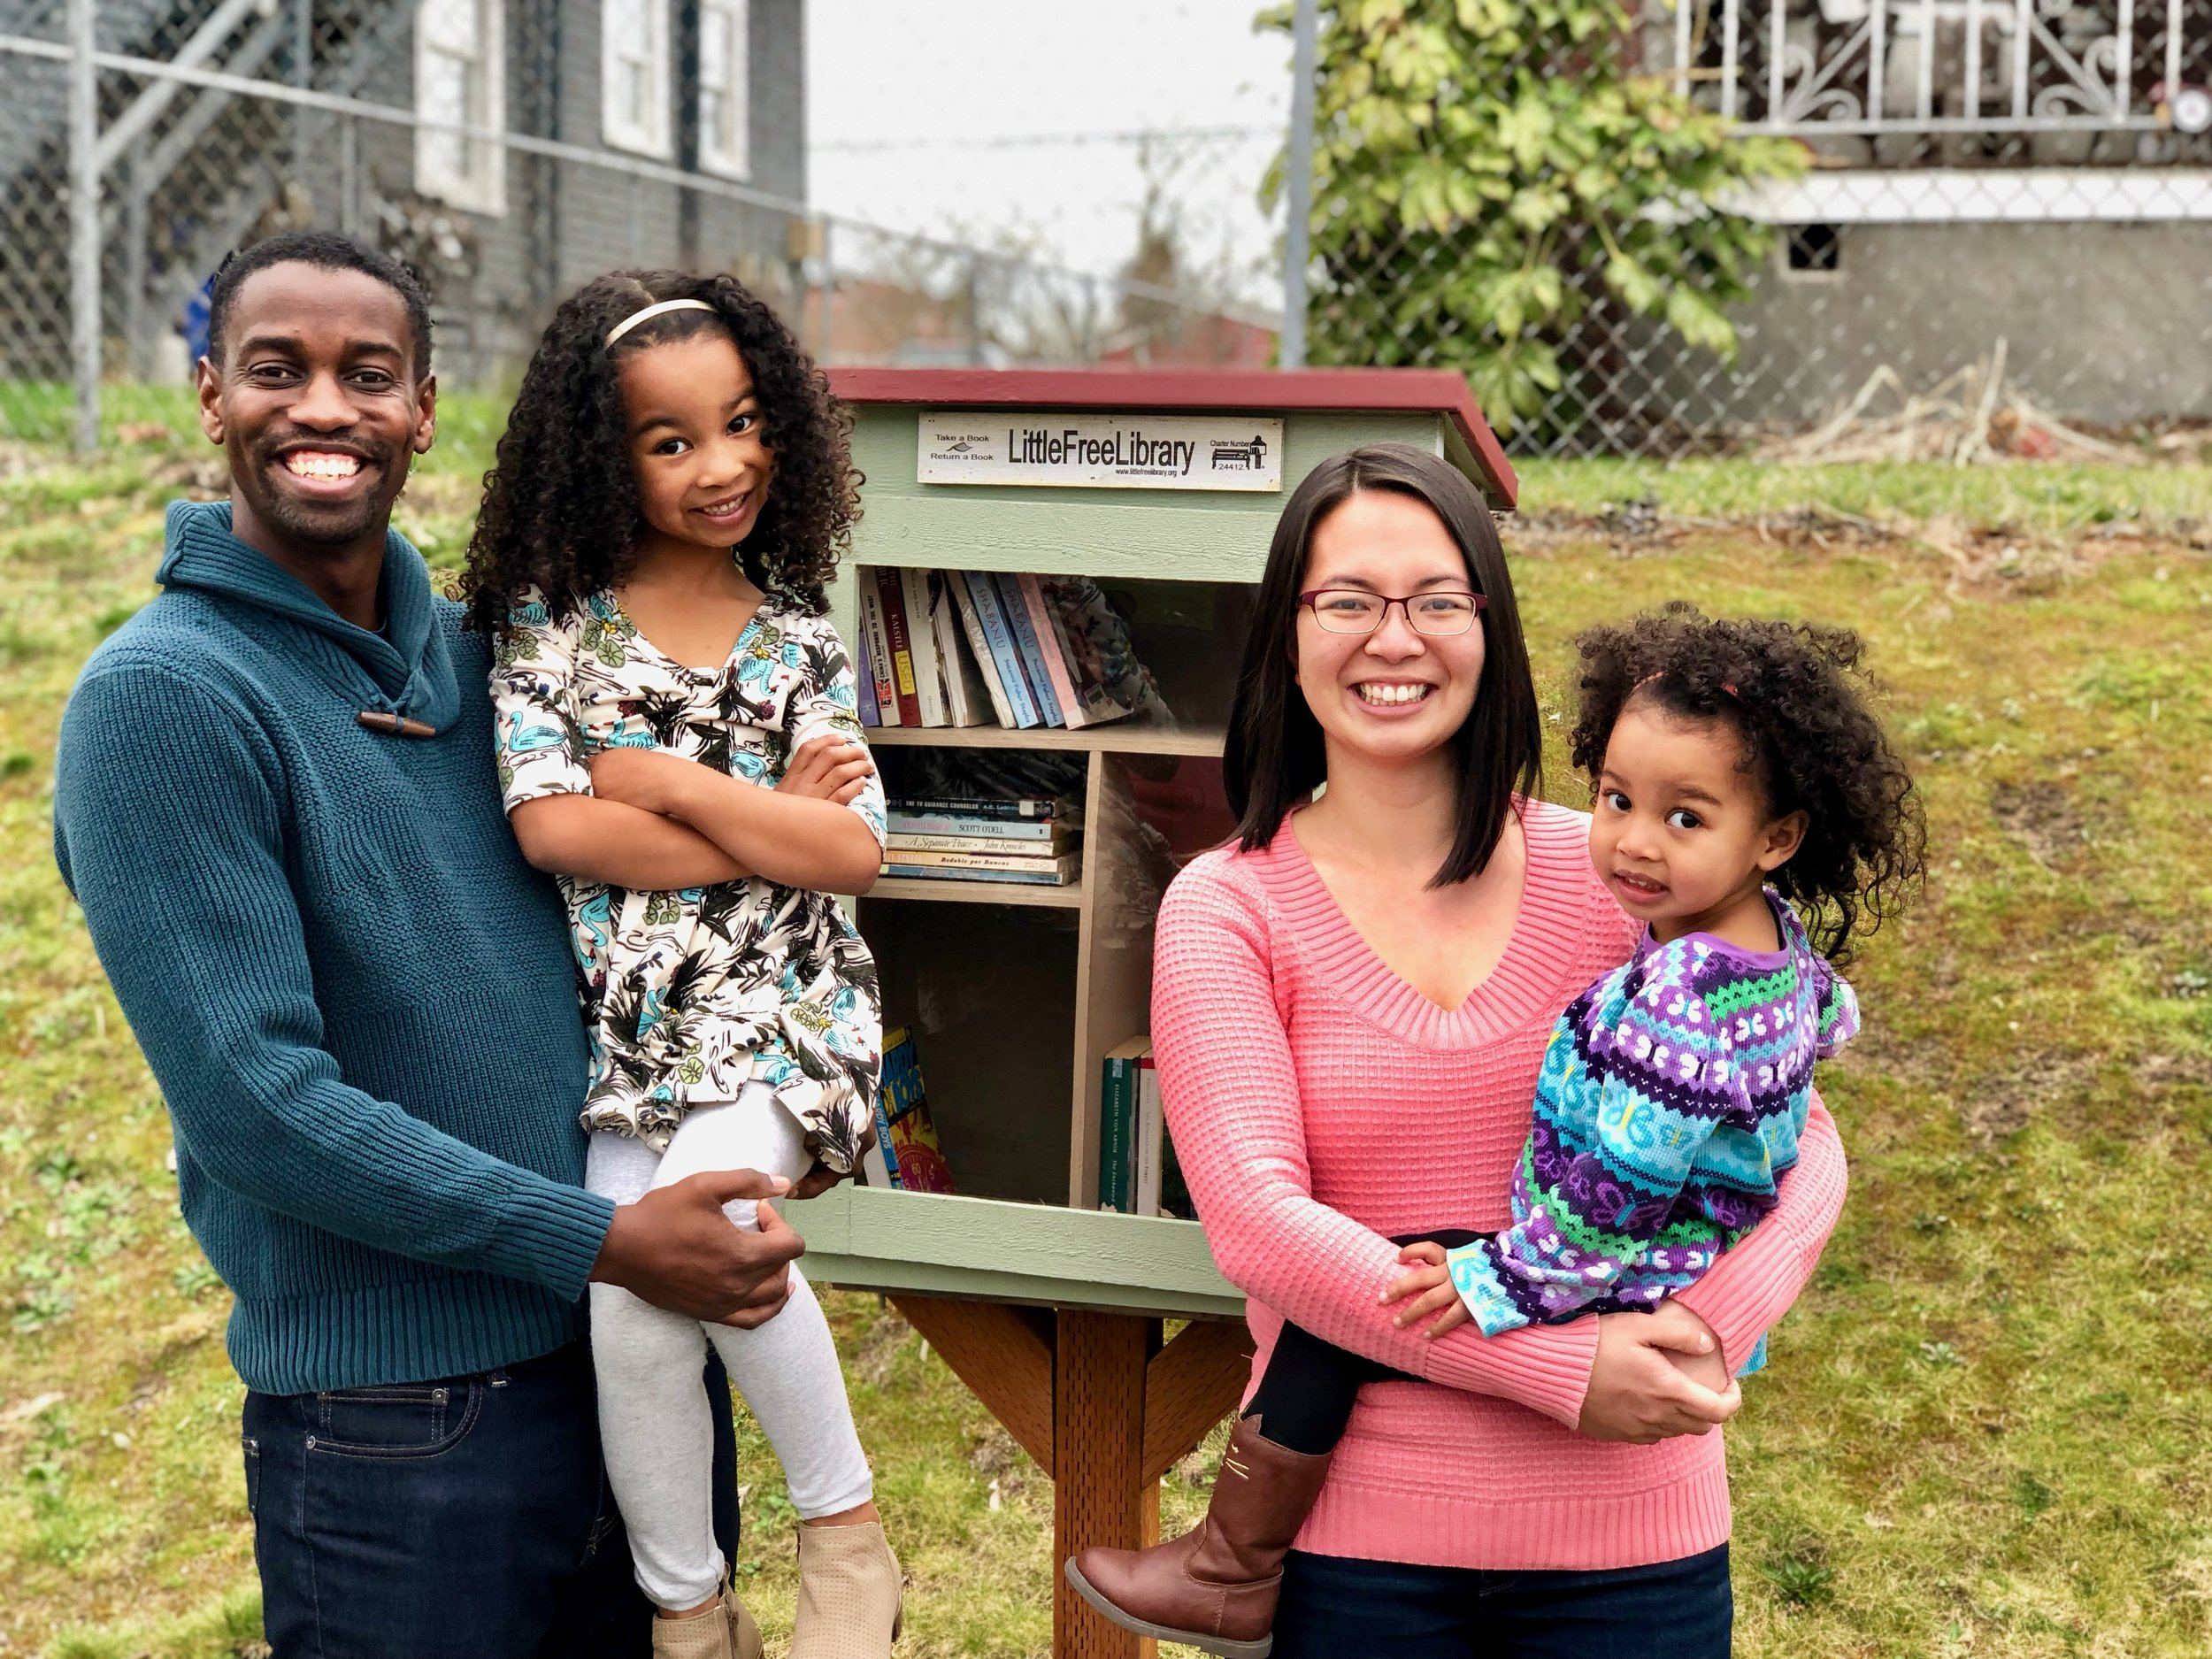 Meet Julia, her husband Trevor, and their 2 girls. Julia is a Hilltop Tacoma resident and steward of a Little Free Library on South M Street. The whole family turned out to introduce me to their neighborhood's library. Let's fill it with books!